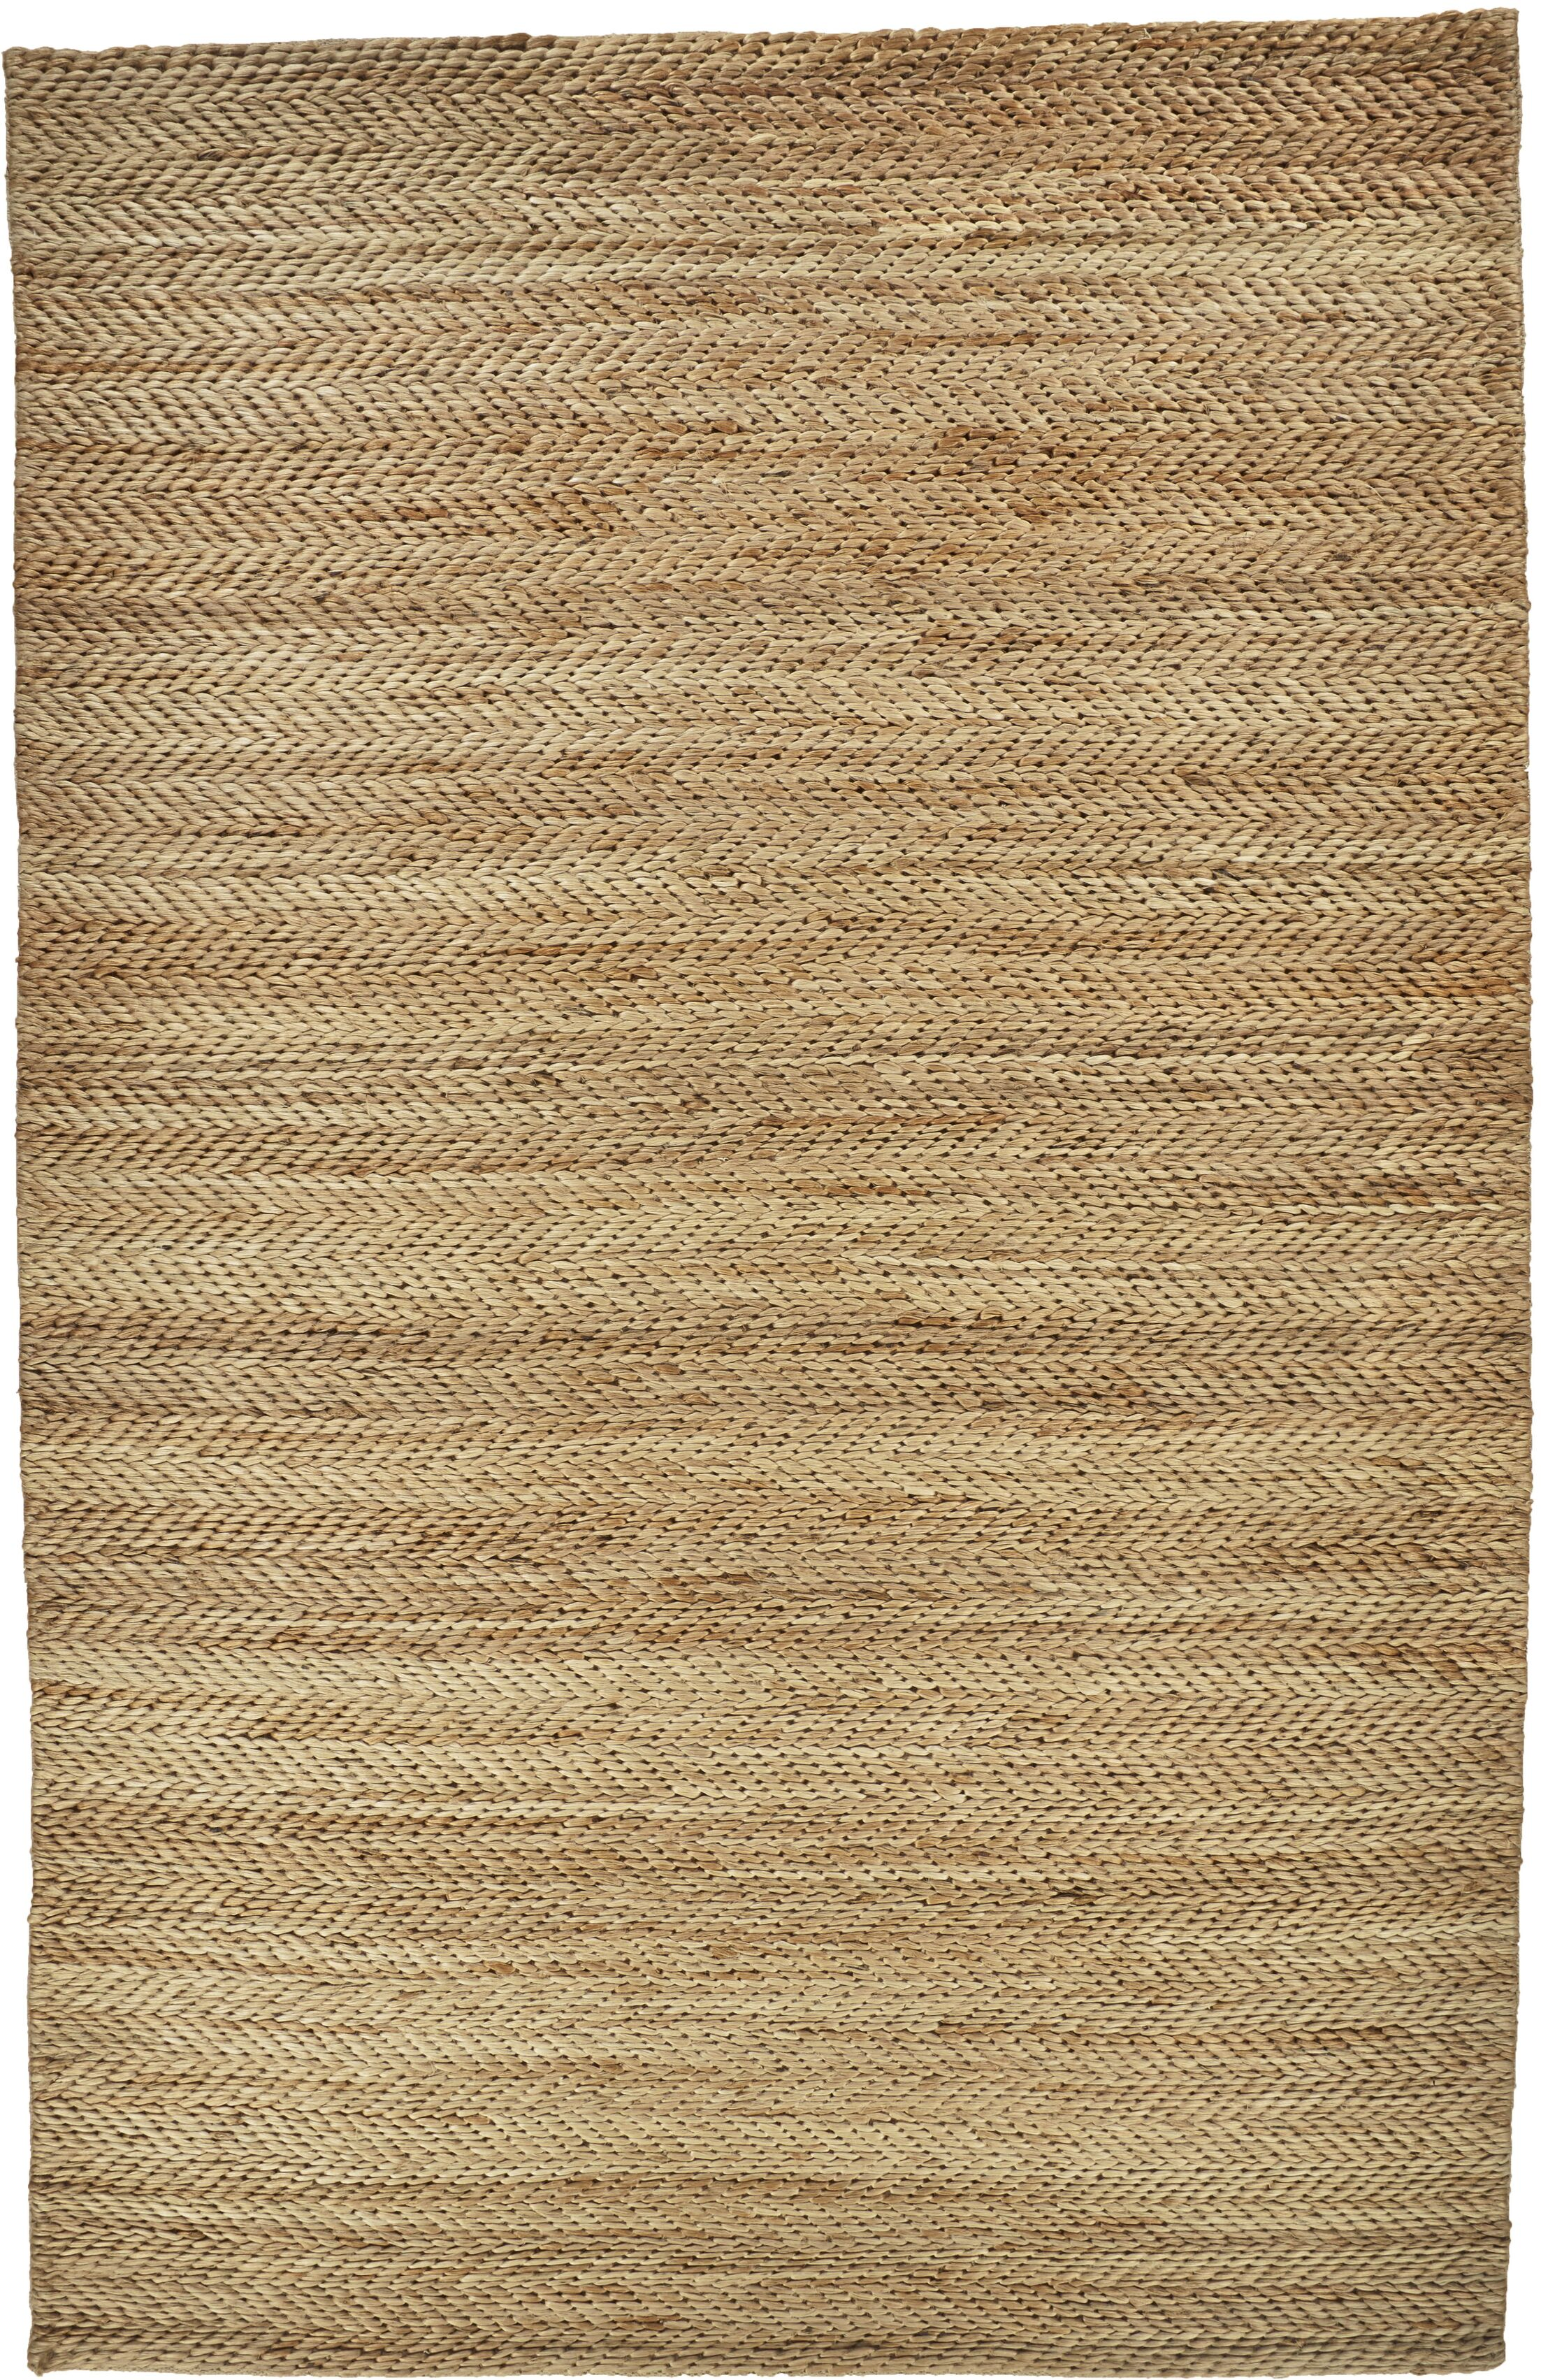 Riaria Hand-Woven Brown Area Rug Rug Size: Rectangle 4' x 6'